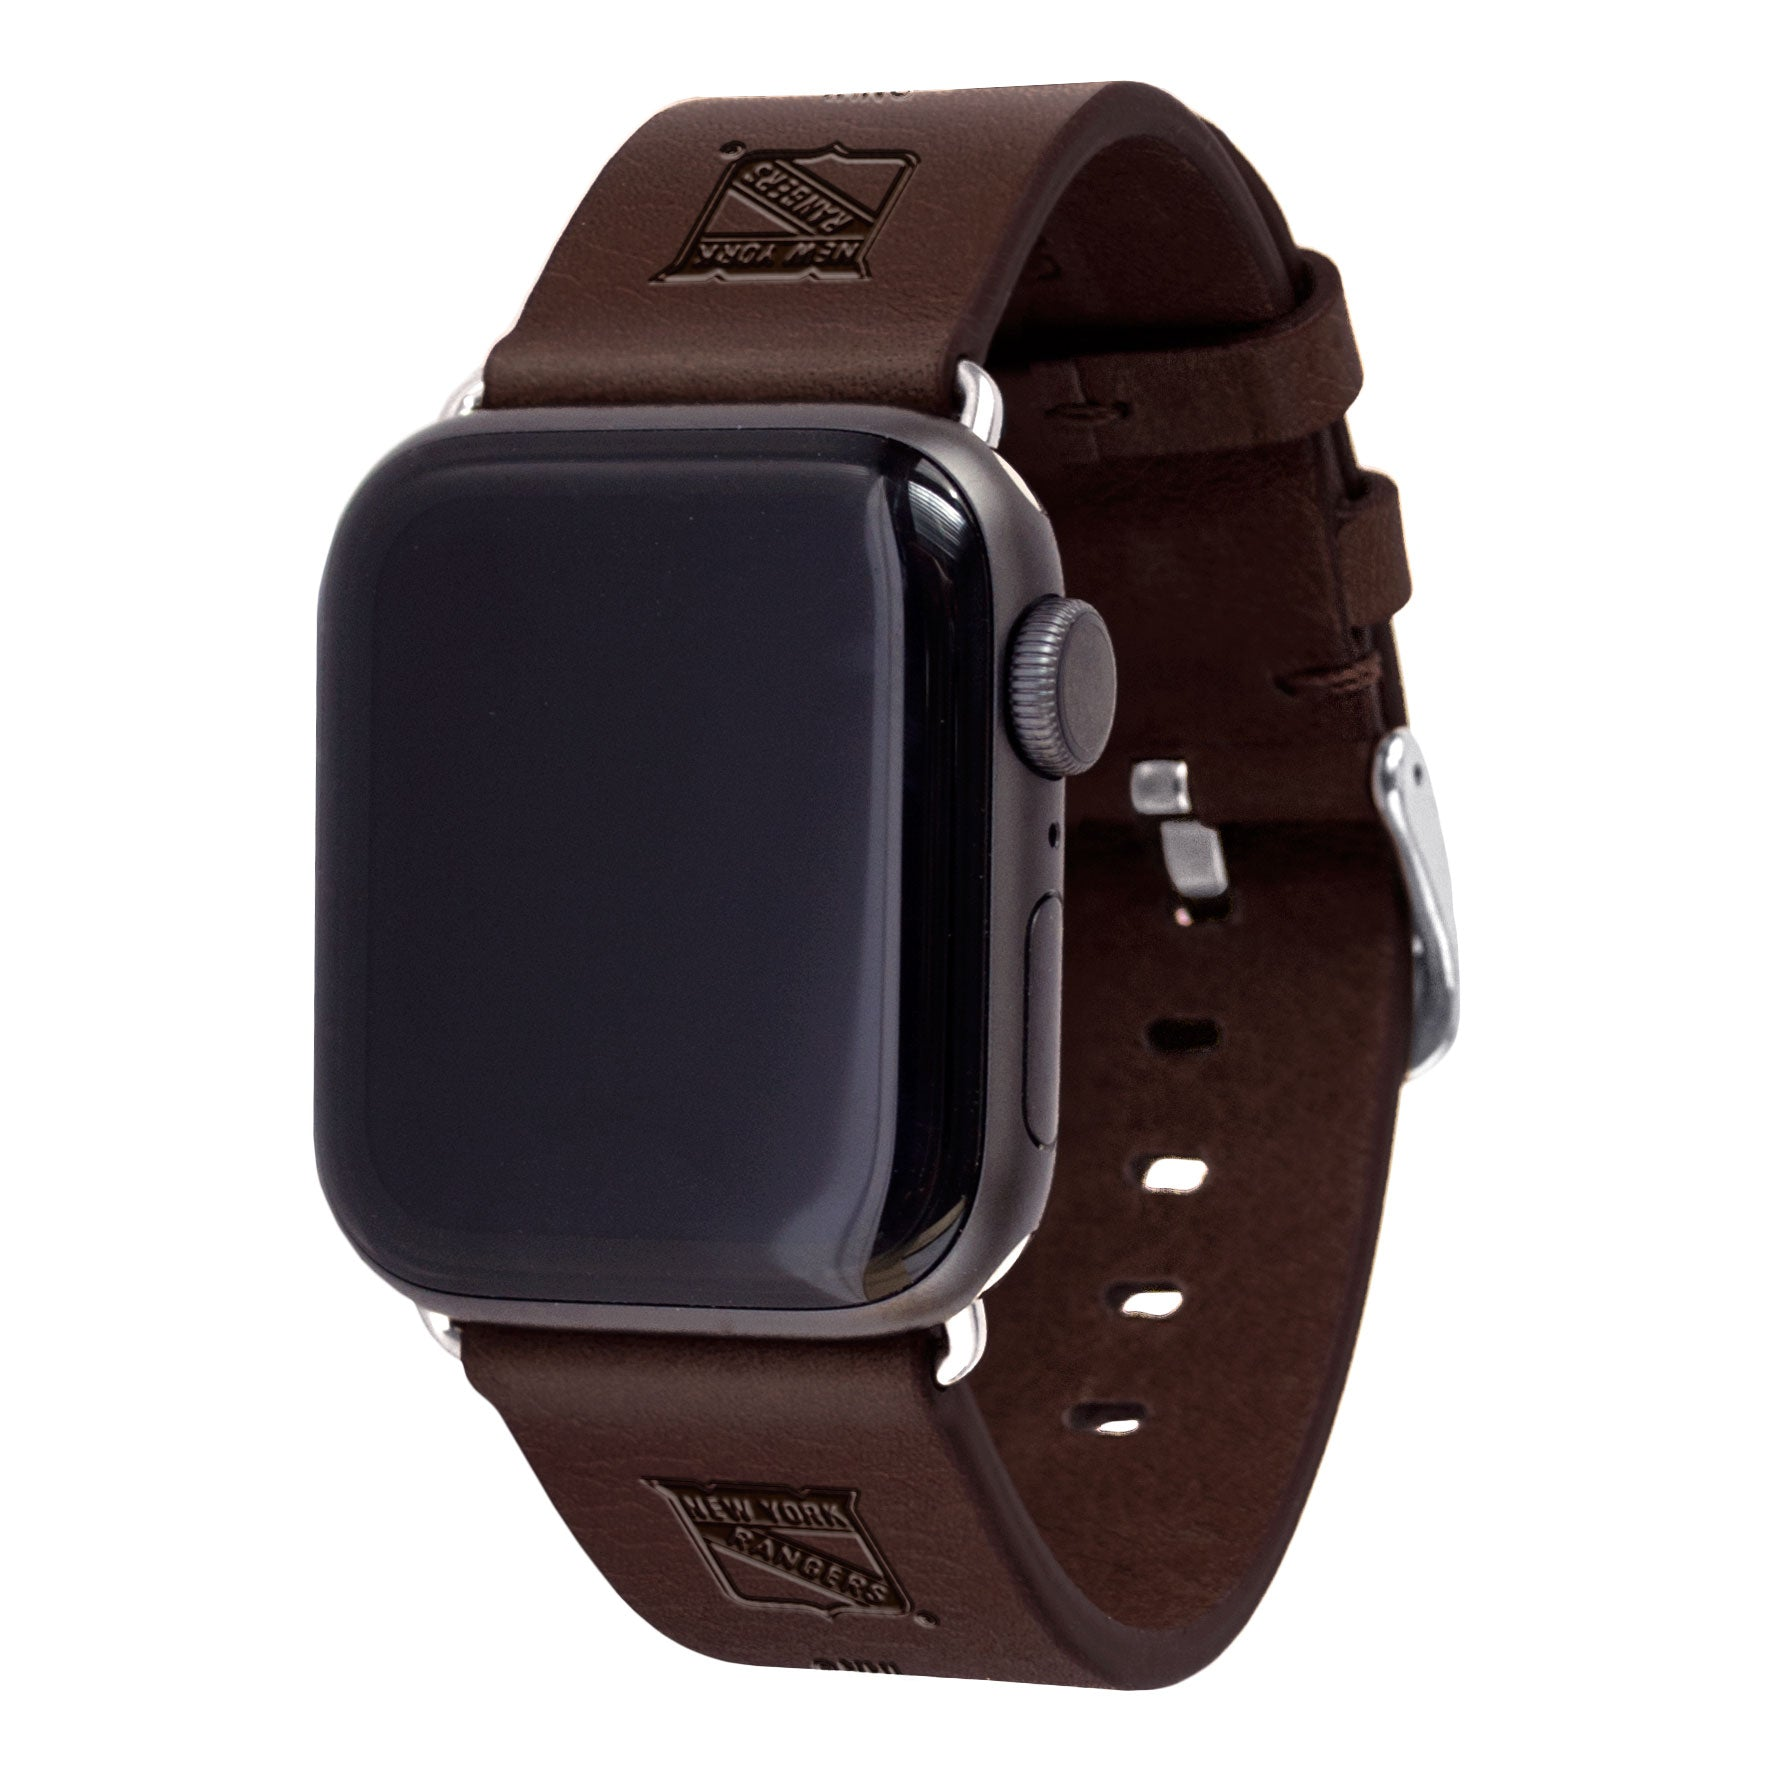 New York Rangers Leather Apple Watch Band - AffinityBands